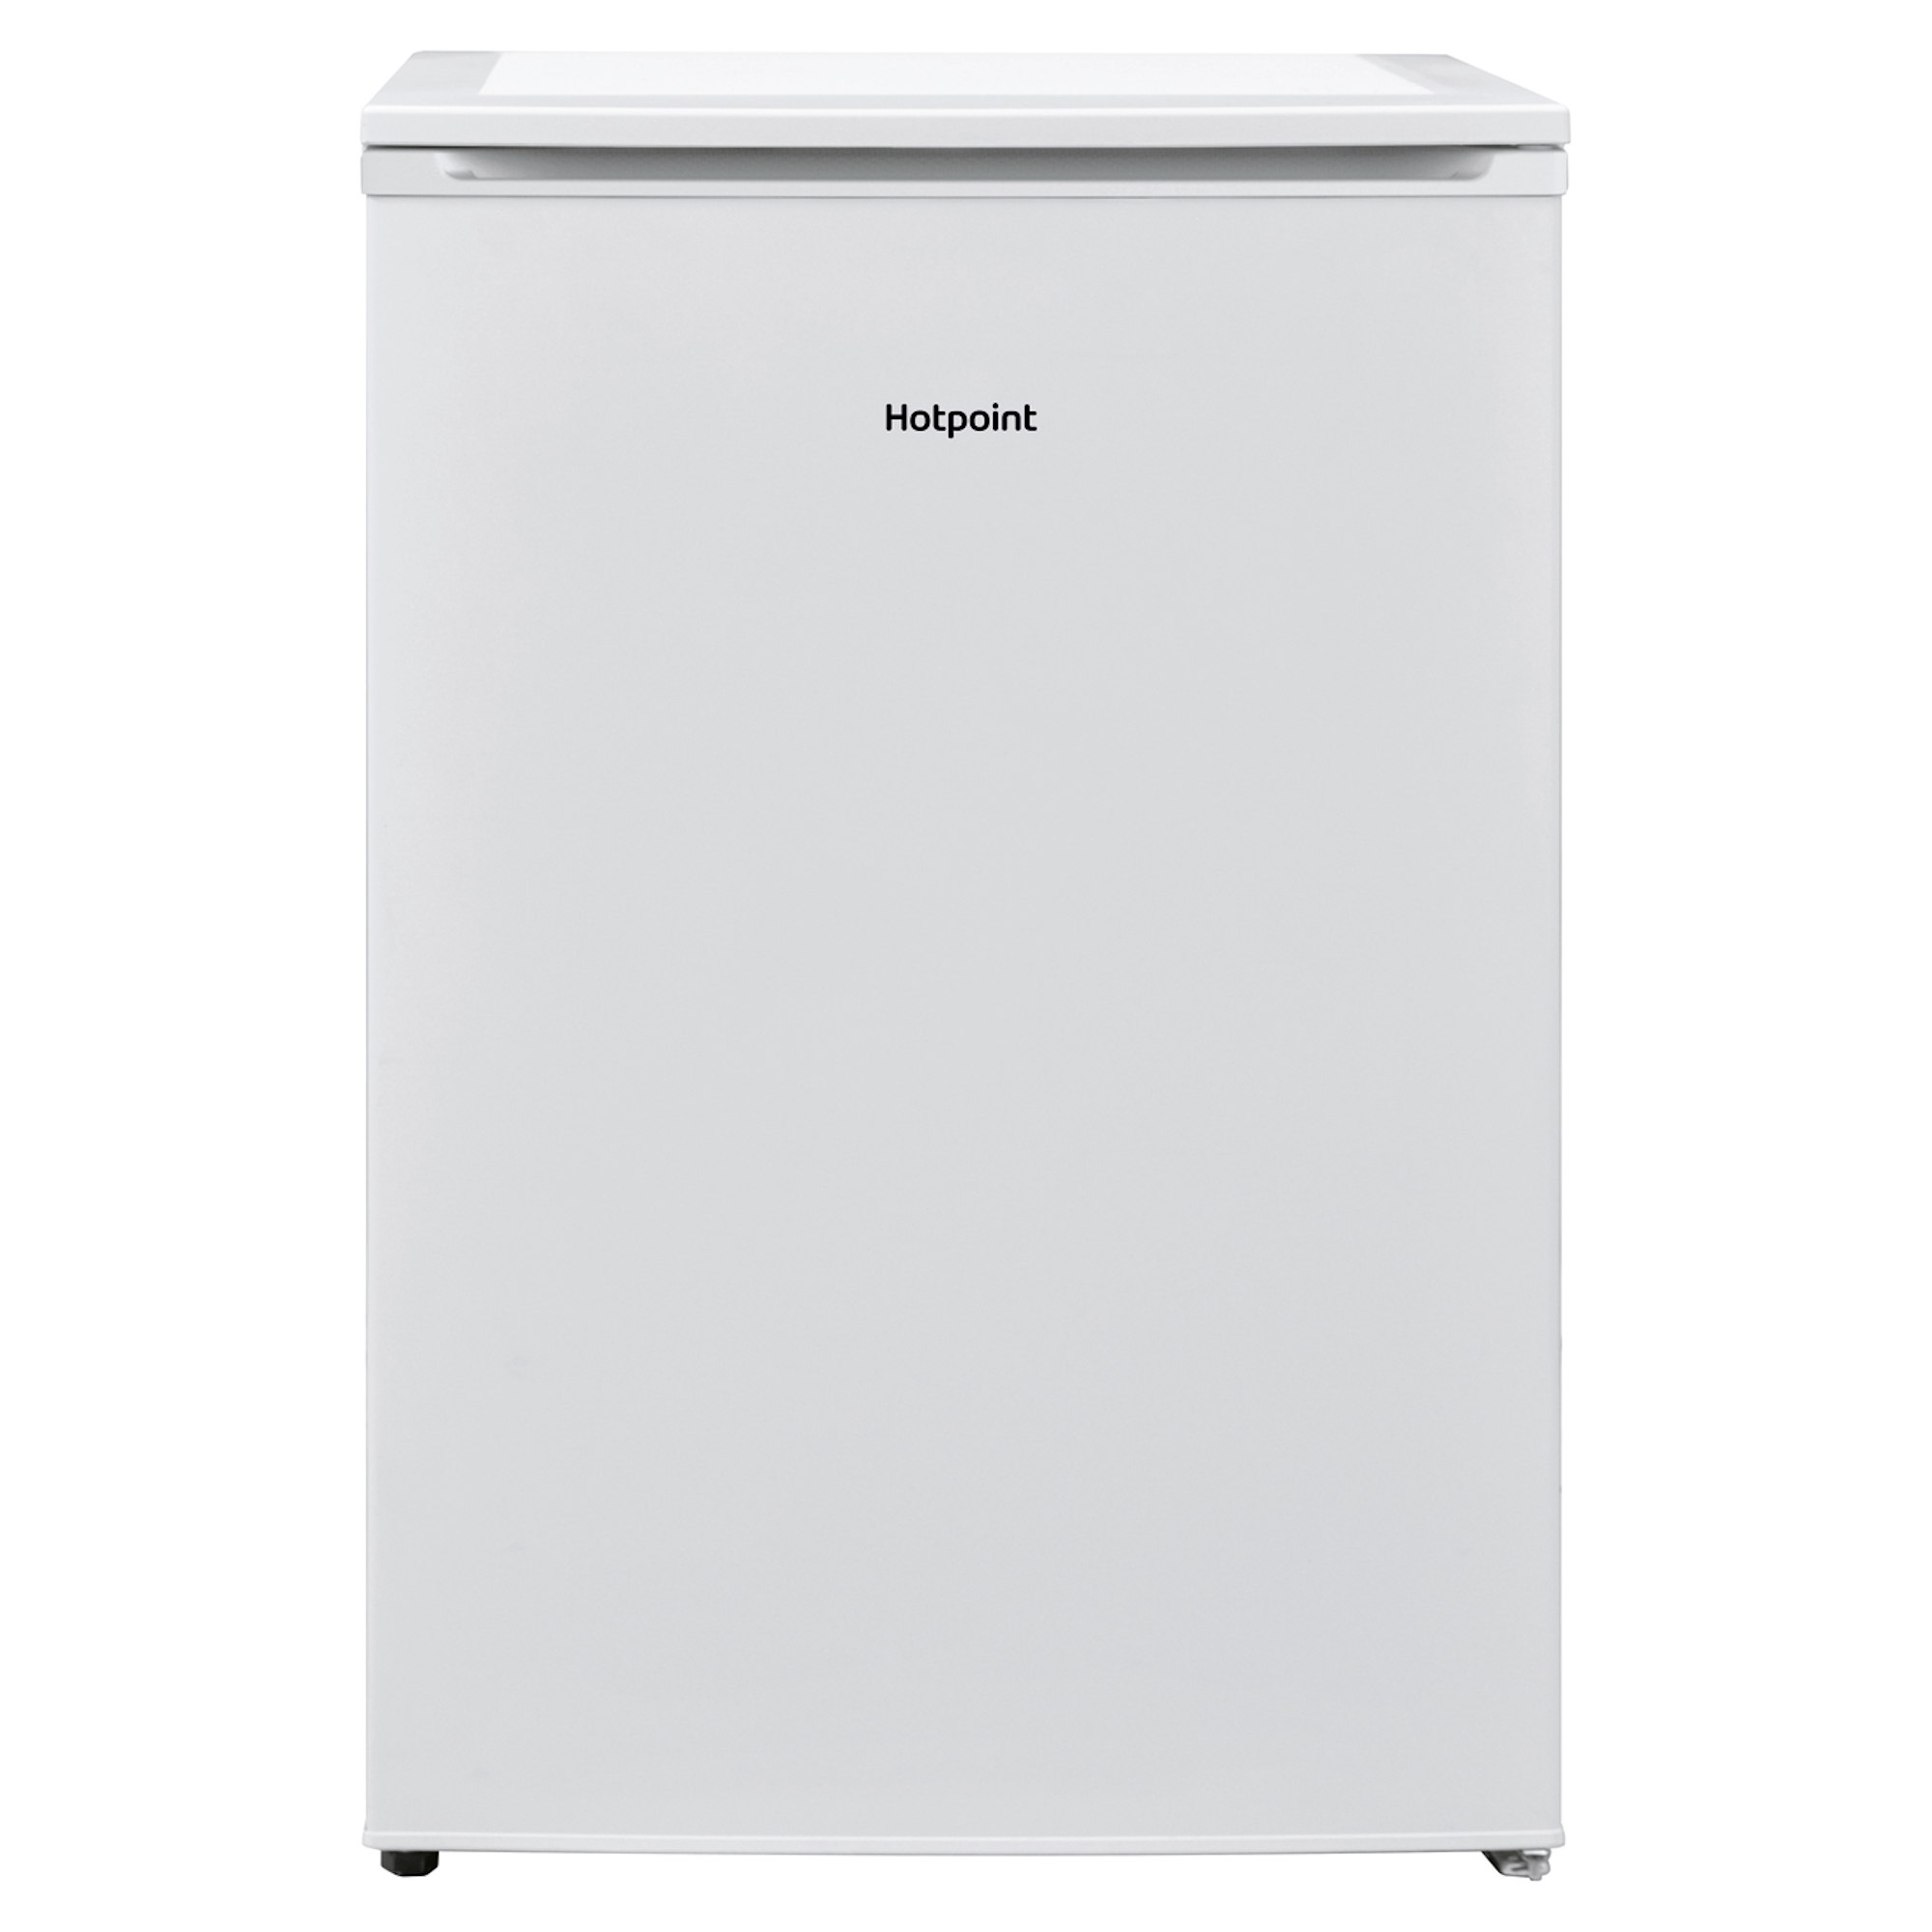 Hotpoint H55RM1110WUK 134L Fridge with Auto Defrost